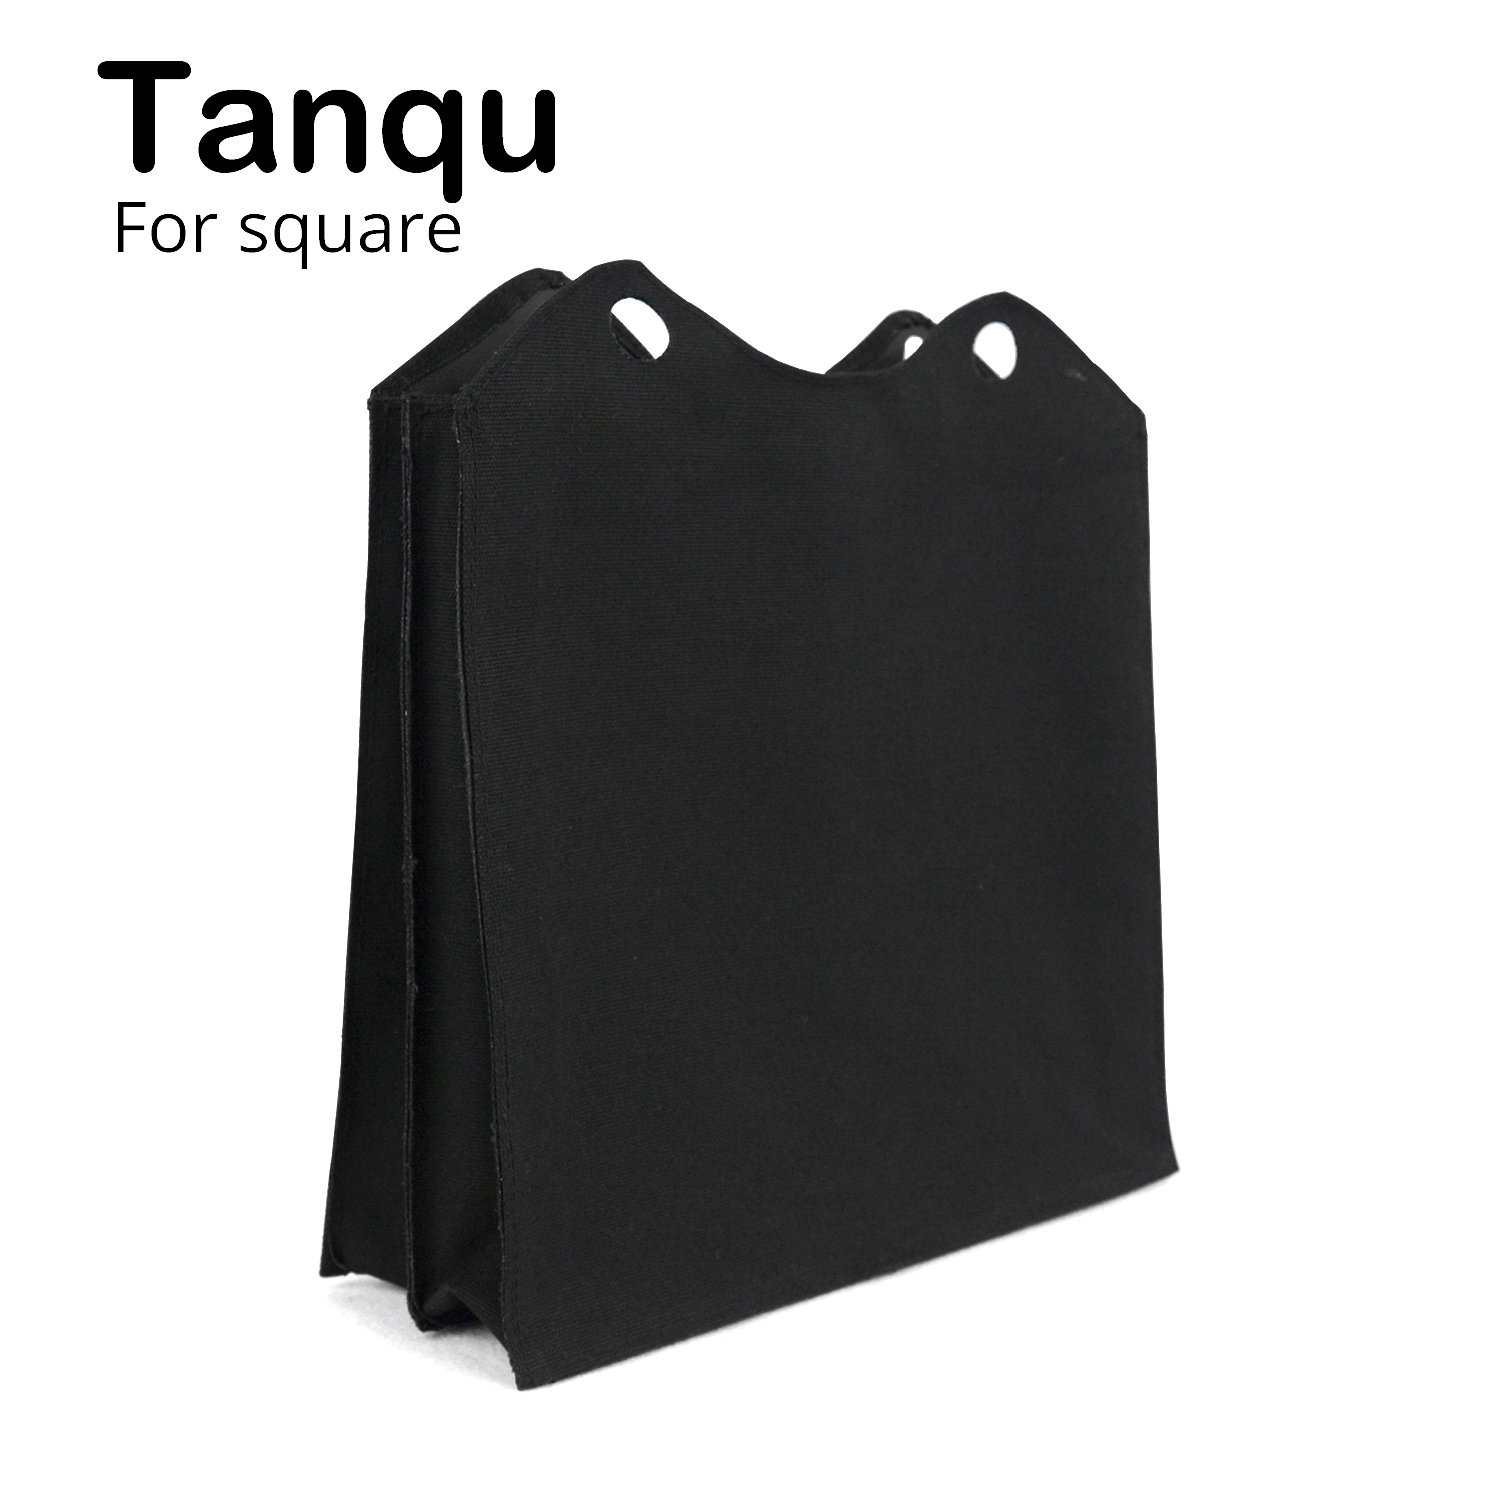 Tanqu New Canvas Fabric Tessuto Inner Insert Multitasking Compartments Pocket Zip Top Lining Sacca Interna for Obag O Square new colorful cartoon floral insert lining for o chic ochic canvas waterproof inner pocket for obag women handbag